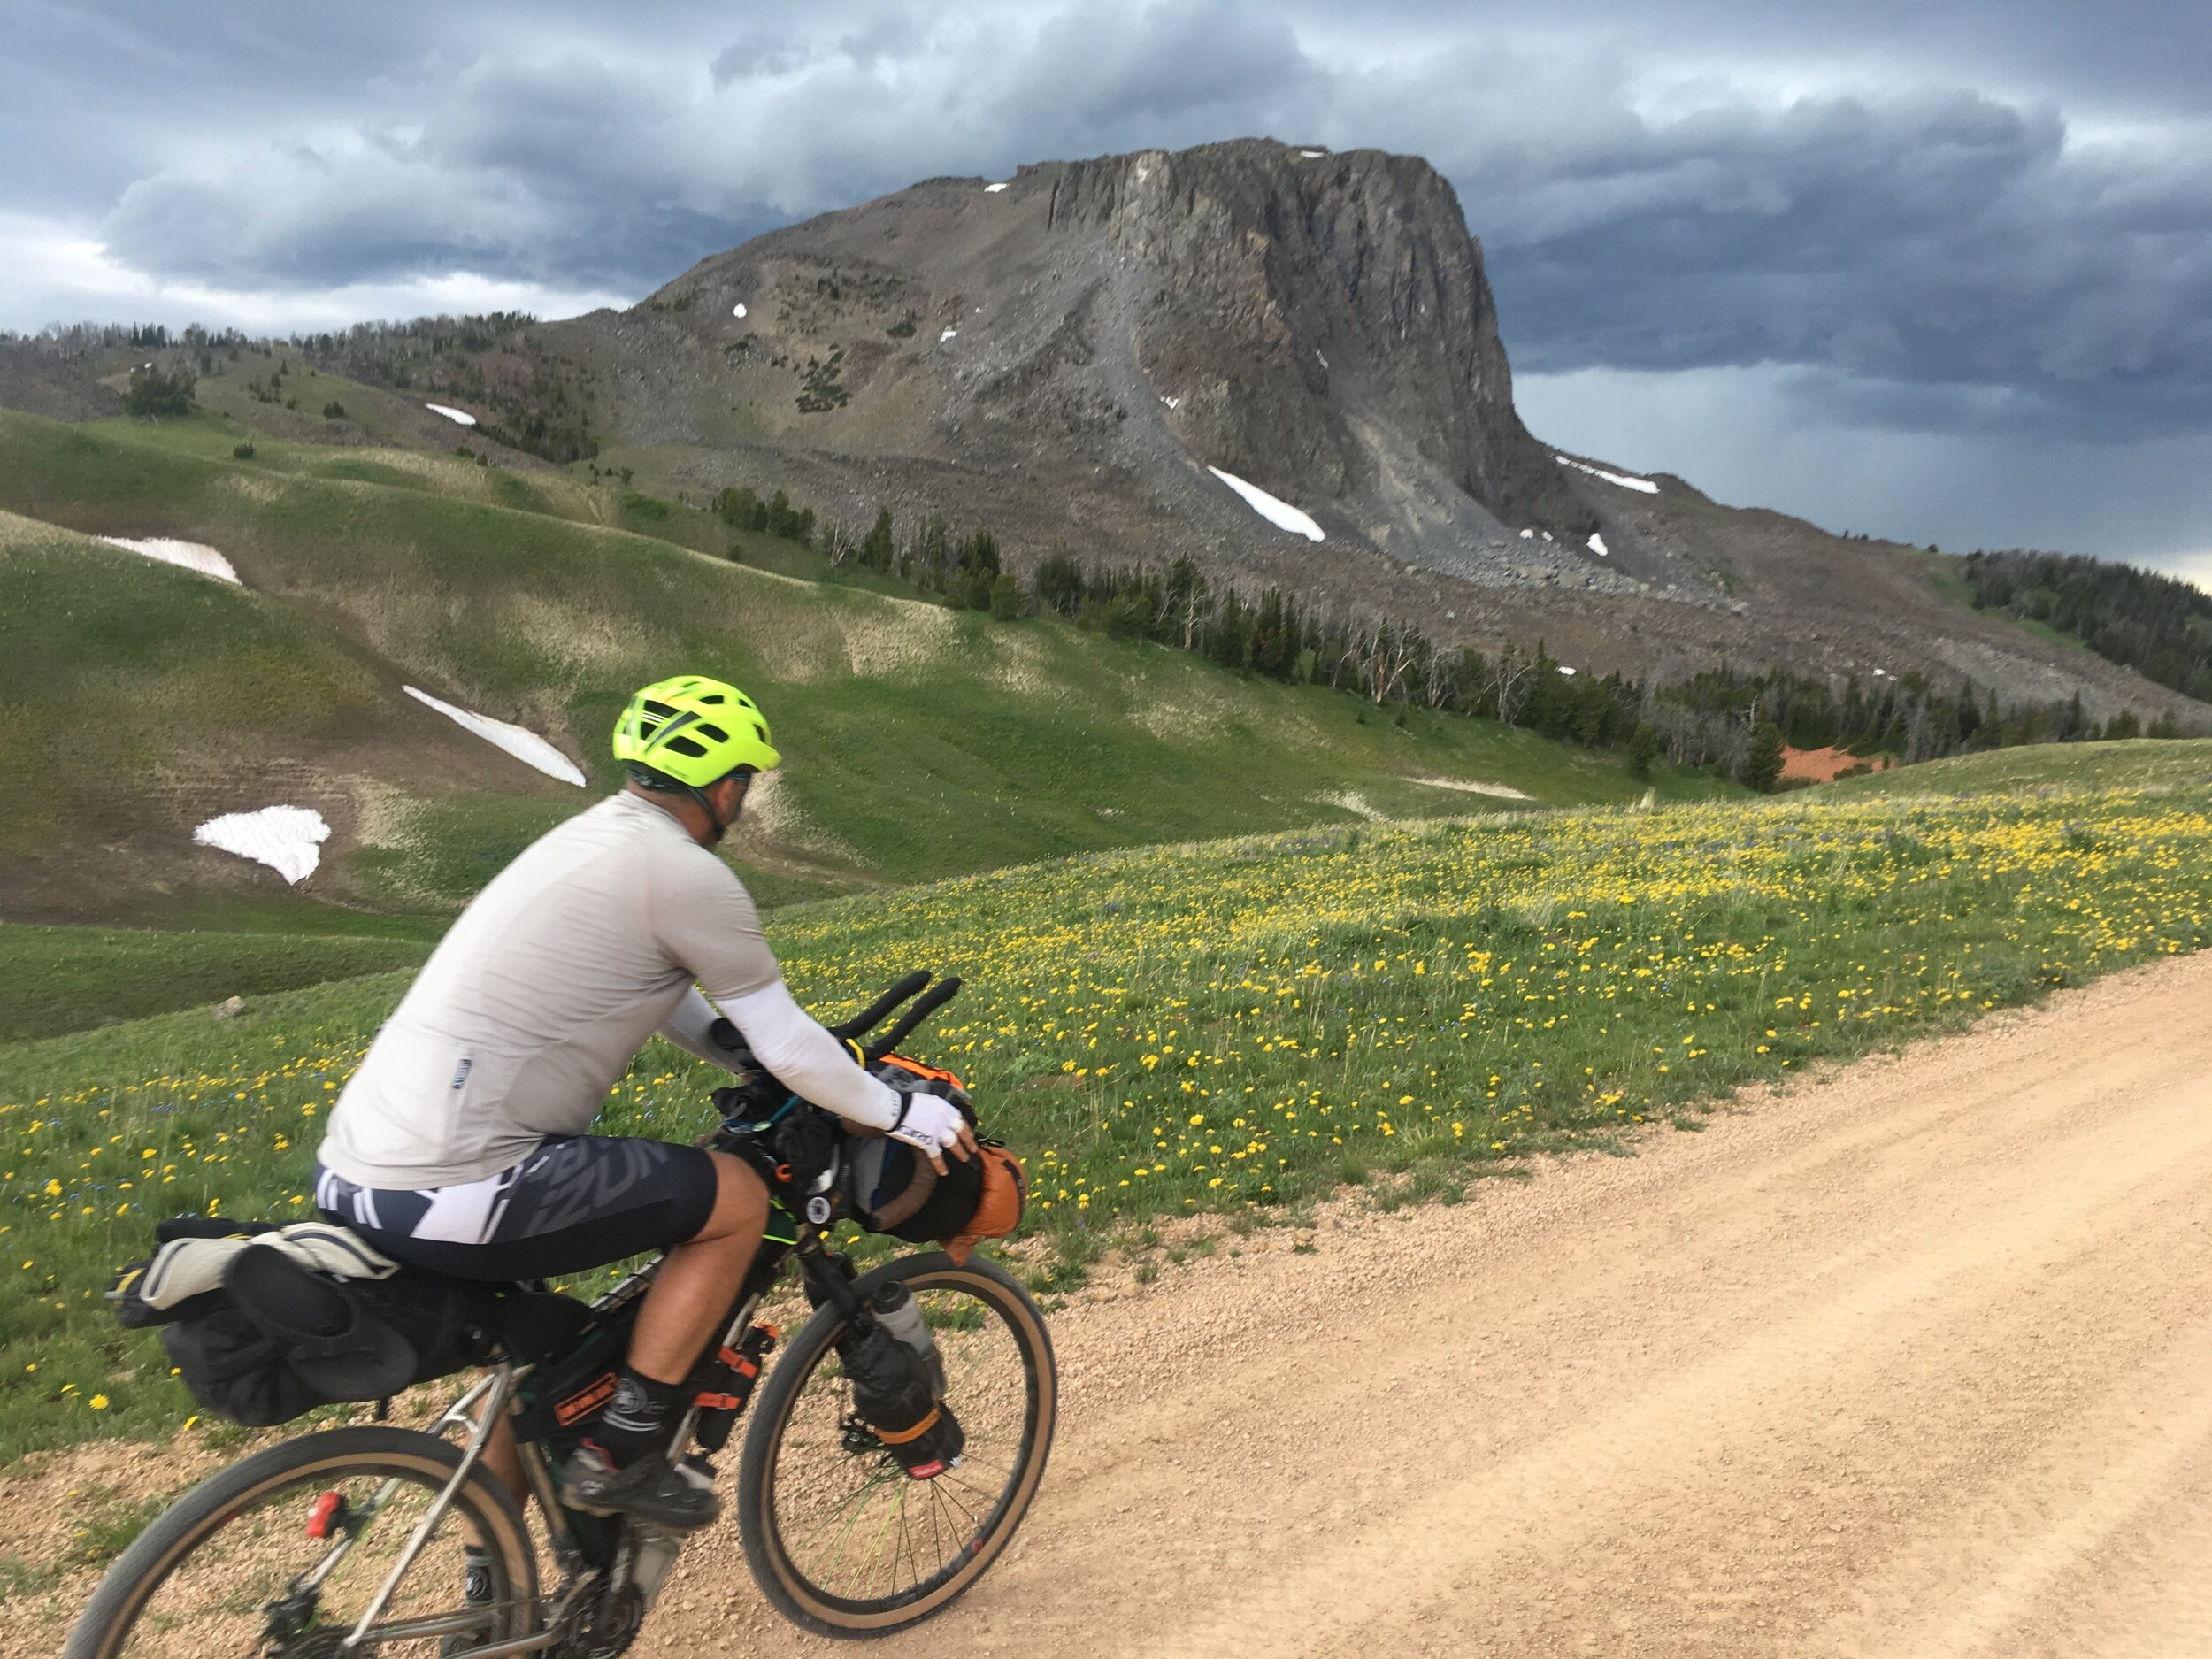 Riding past Black Butte peak high in the Gravelly mountain range in southwest Montana